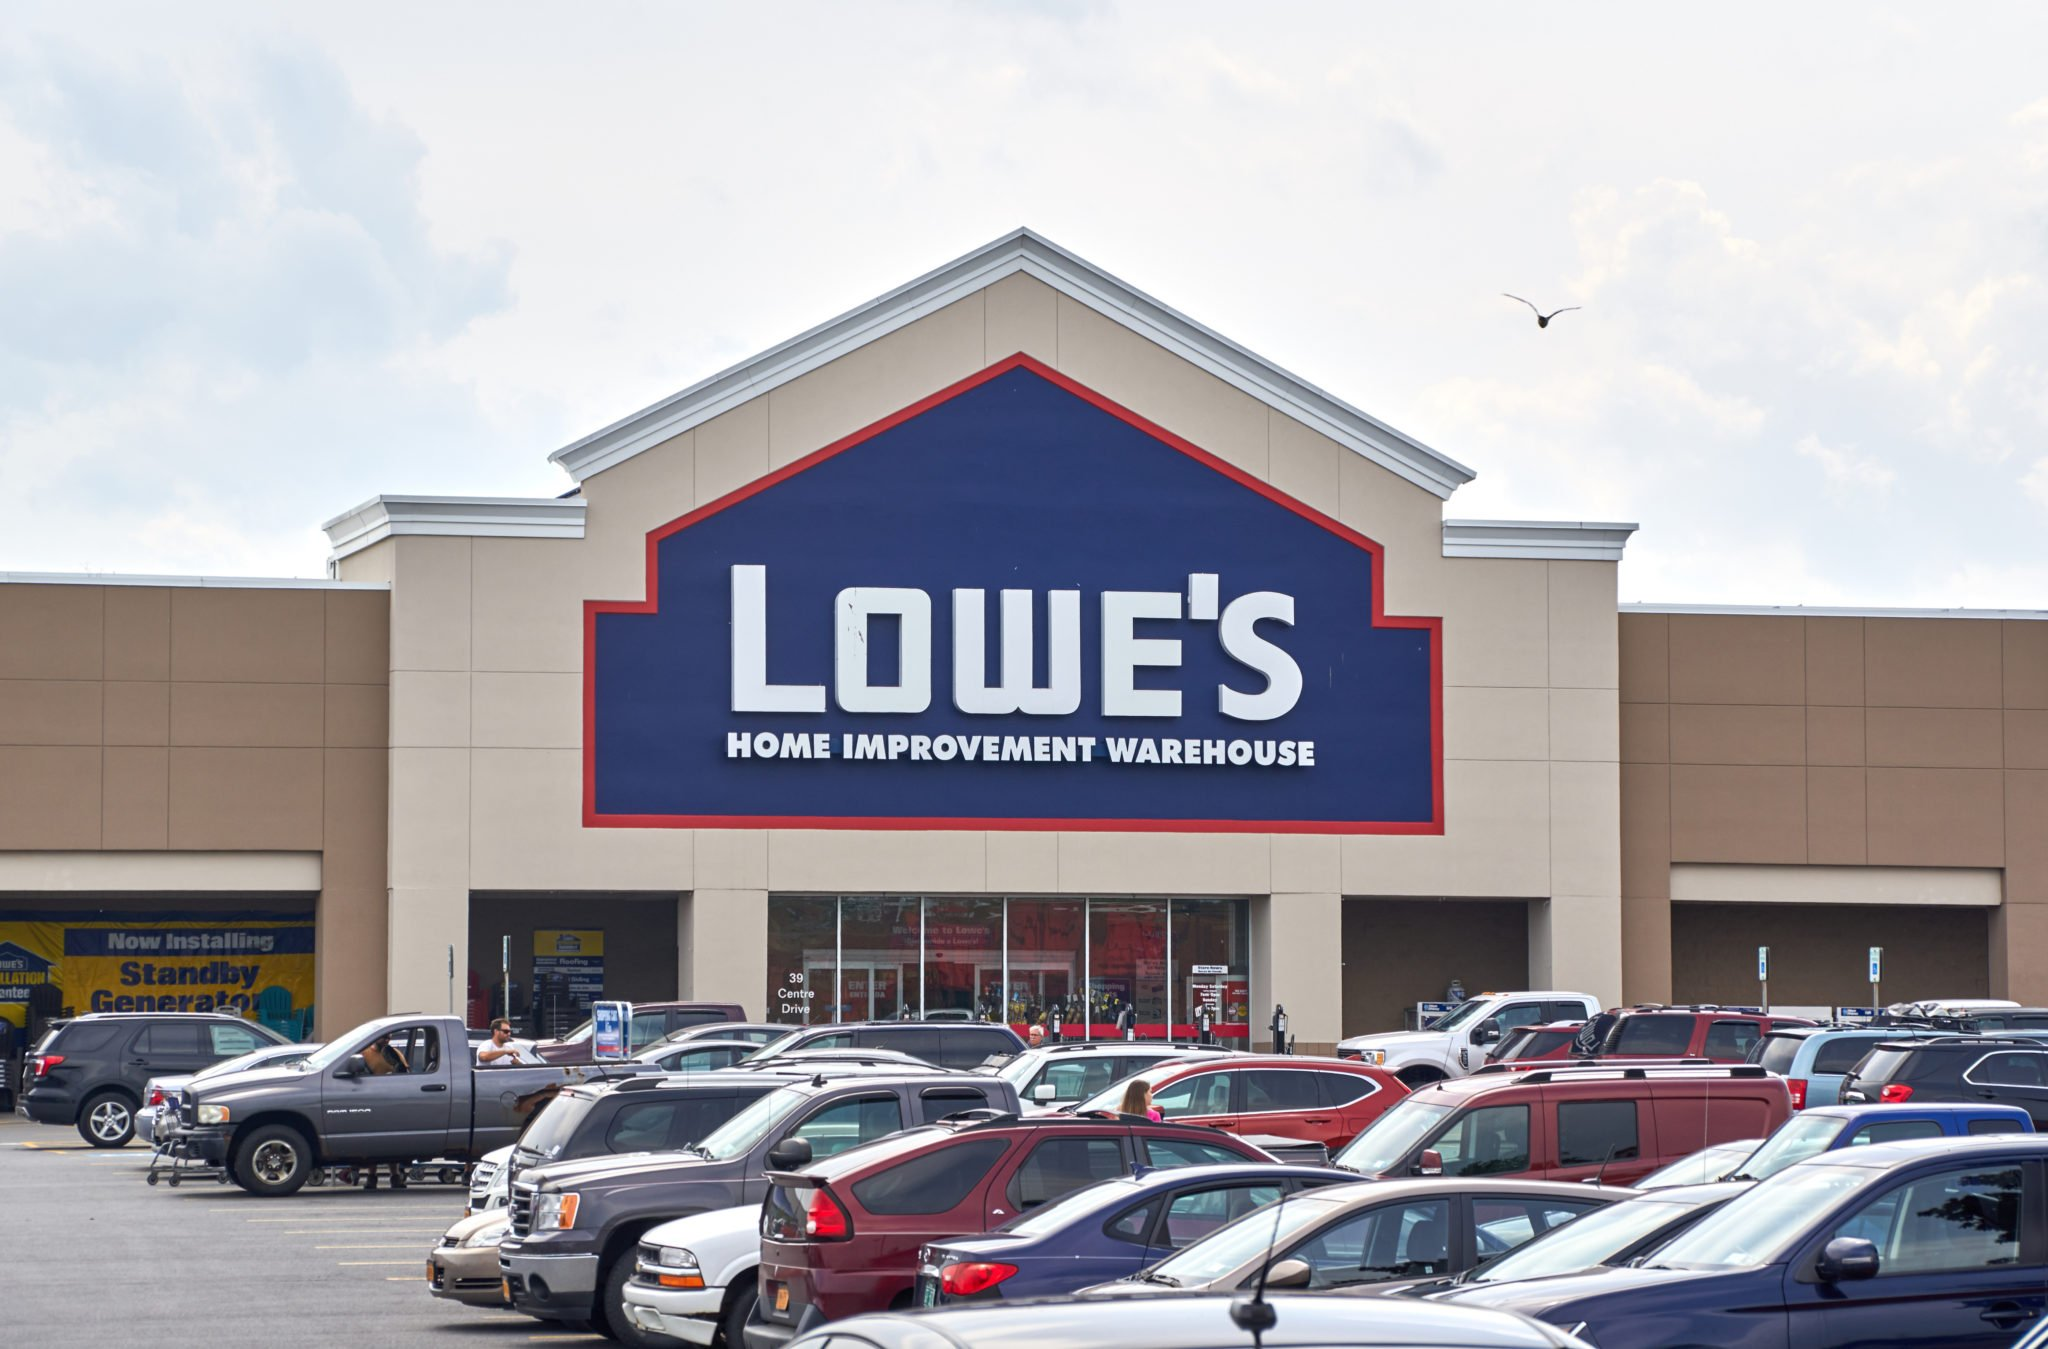 Lowe's Advantage Credit Card Review - Should You Sign Up? [2018]